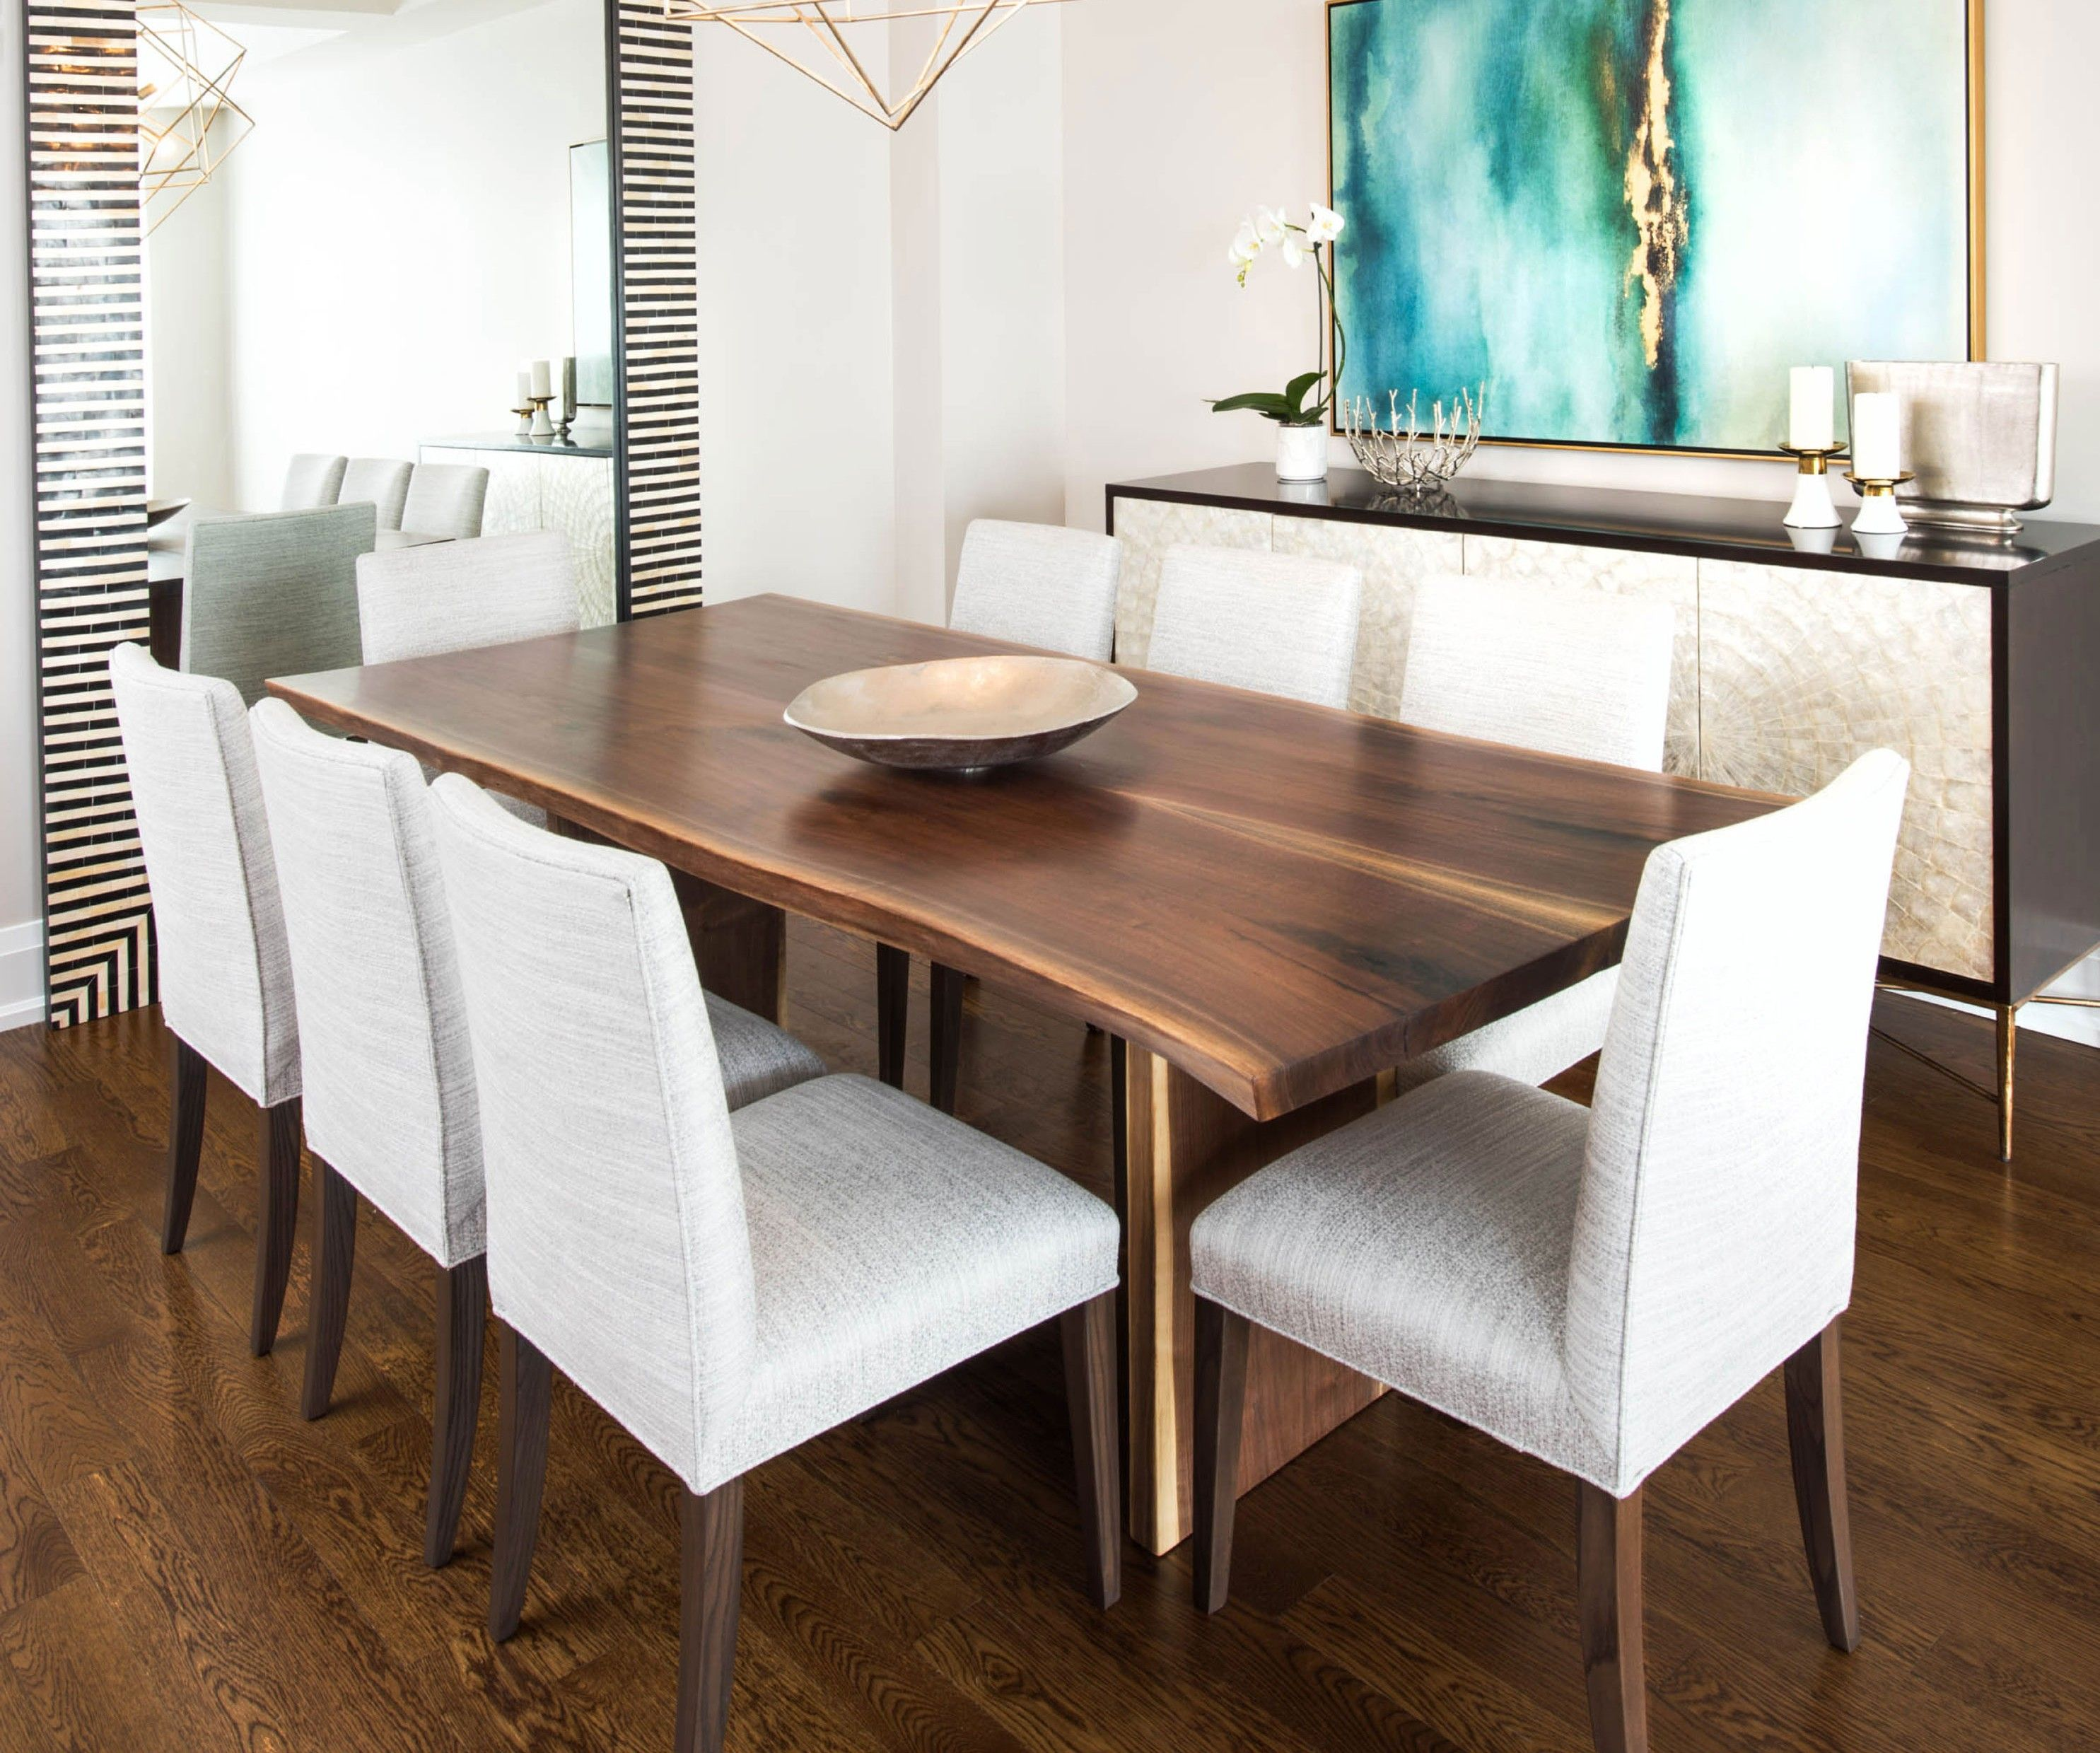 Tremendous Do Not Fret About The Style Of Your Dining Room Too Much Download Free Architecture Designs Licukmadebymaigaardcom